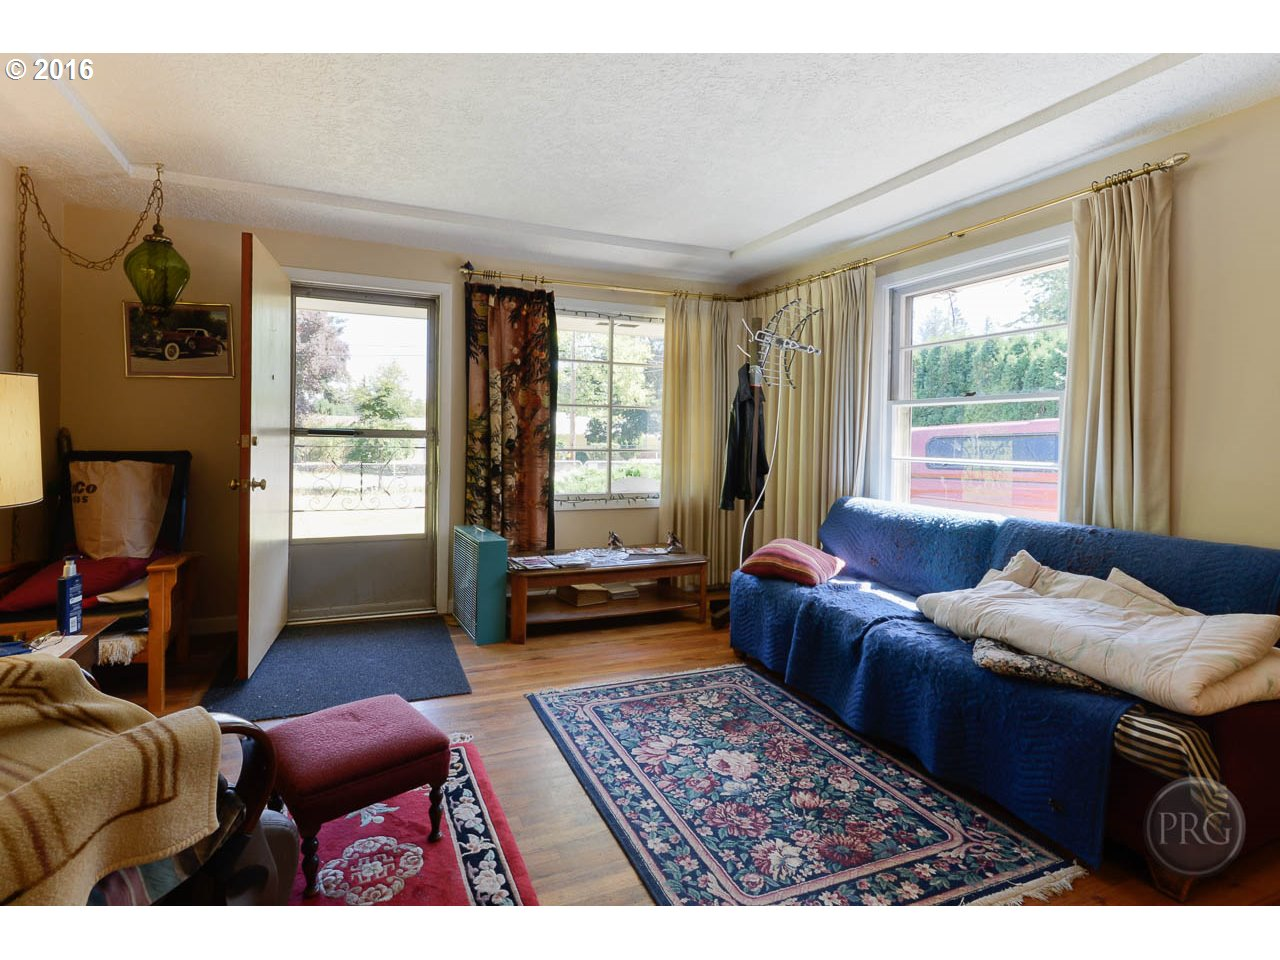 1365 sq. ft 3 bedrooms 1 bathrooms  House For Sale,Portland, OR